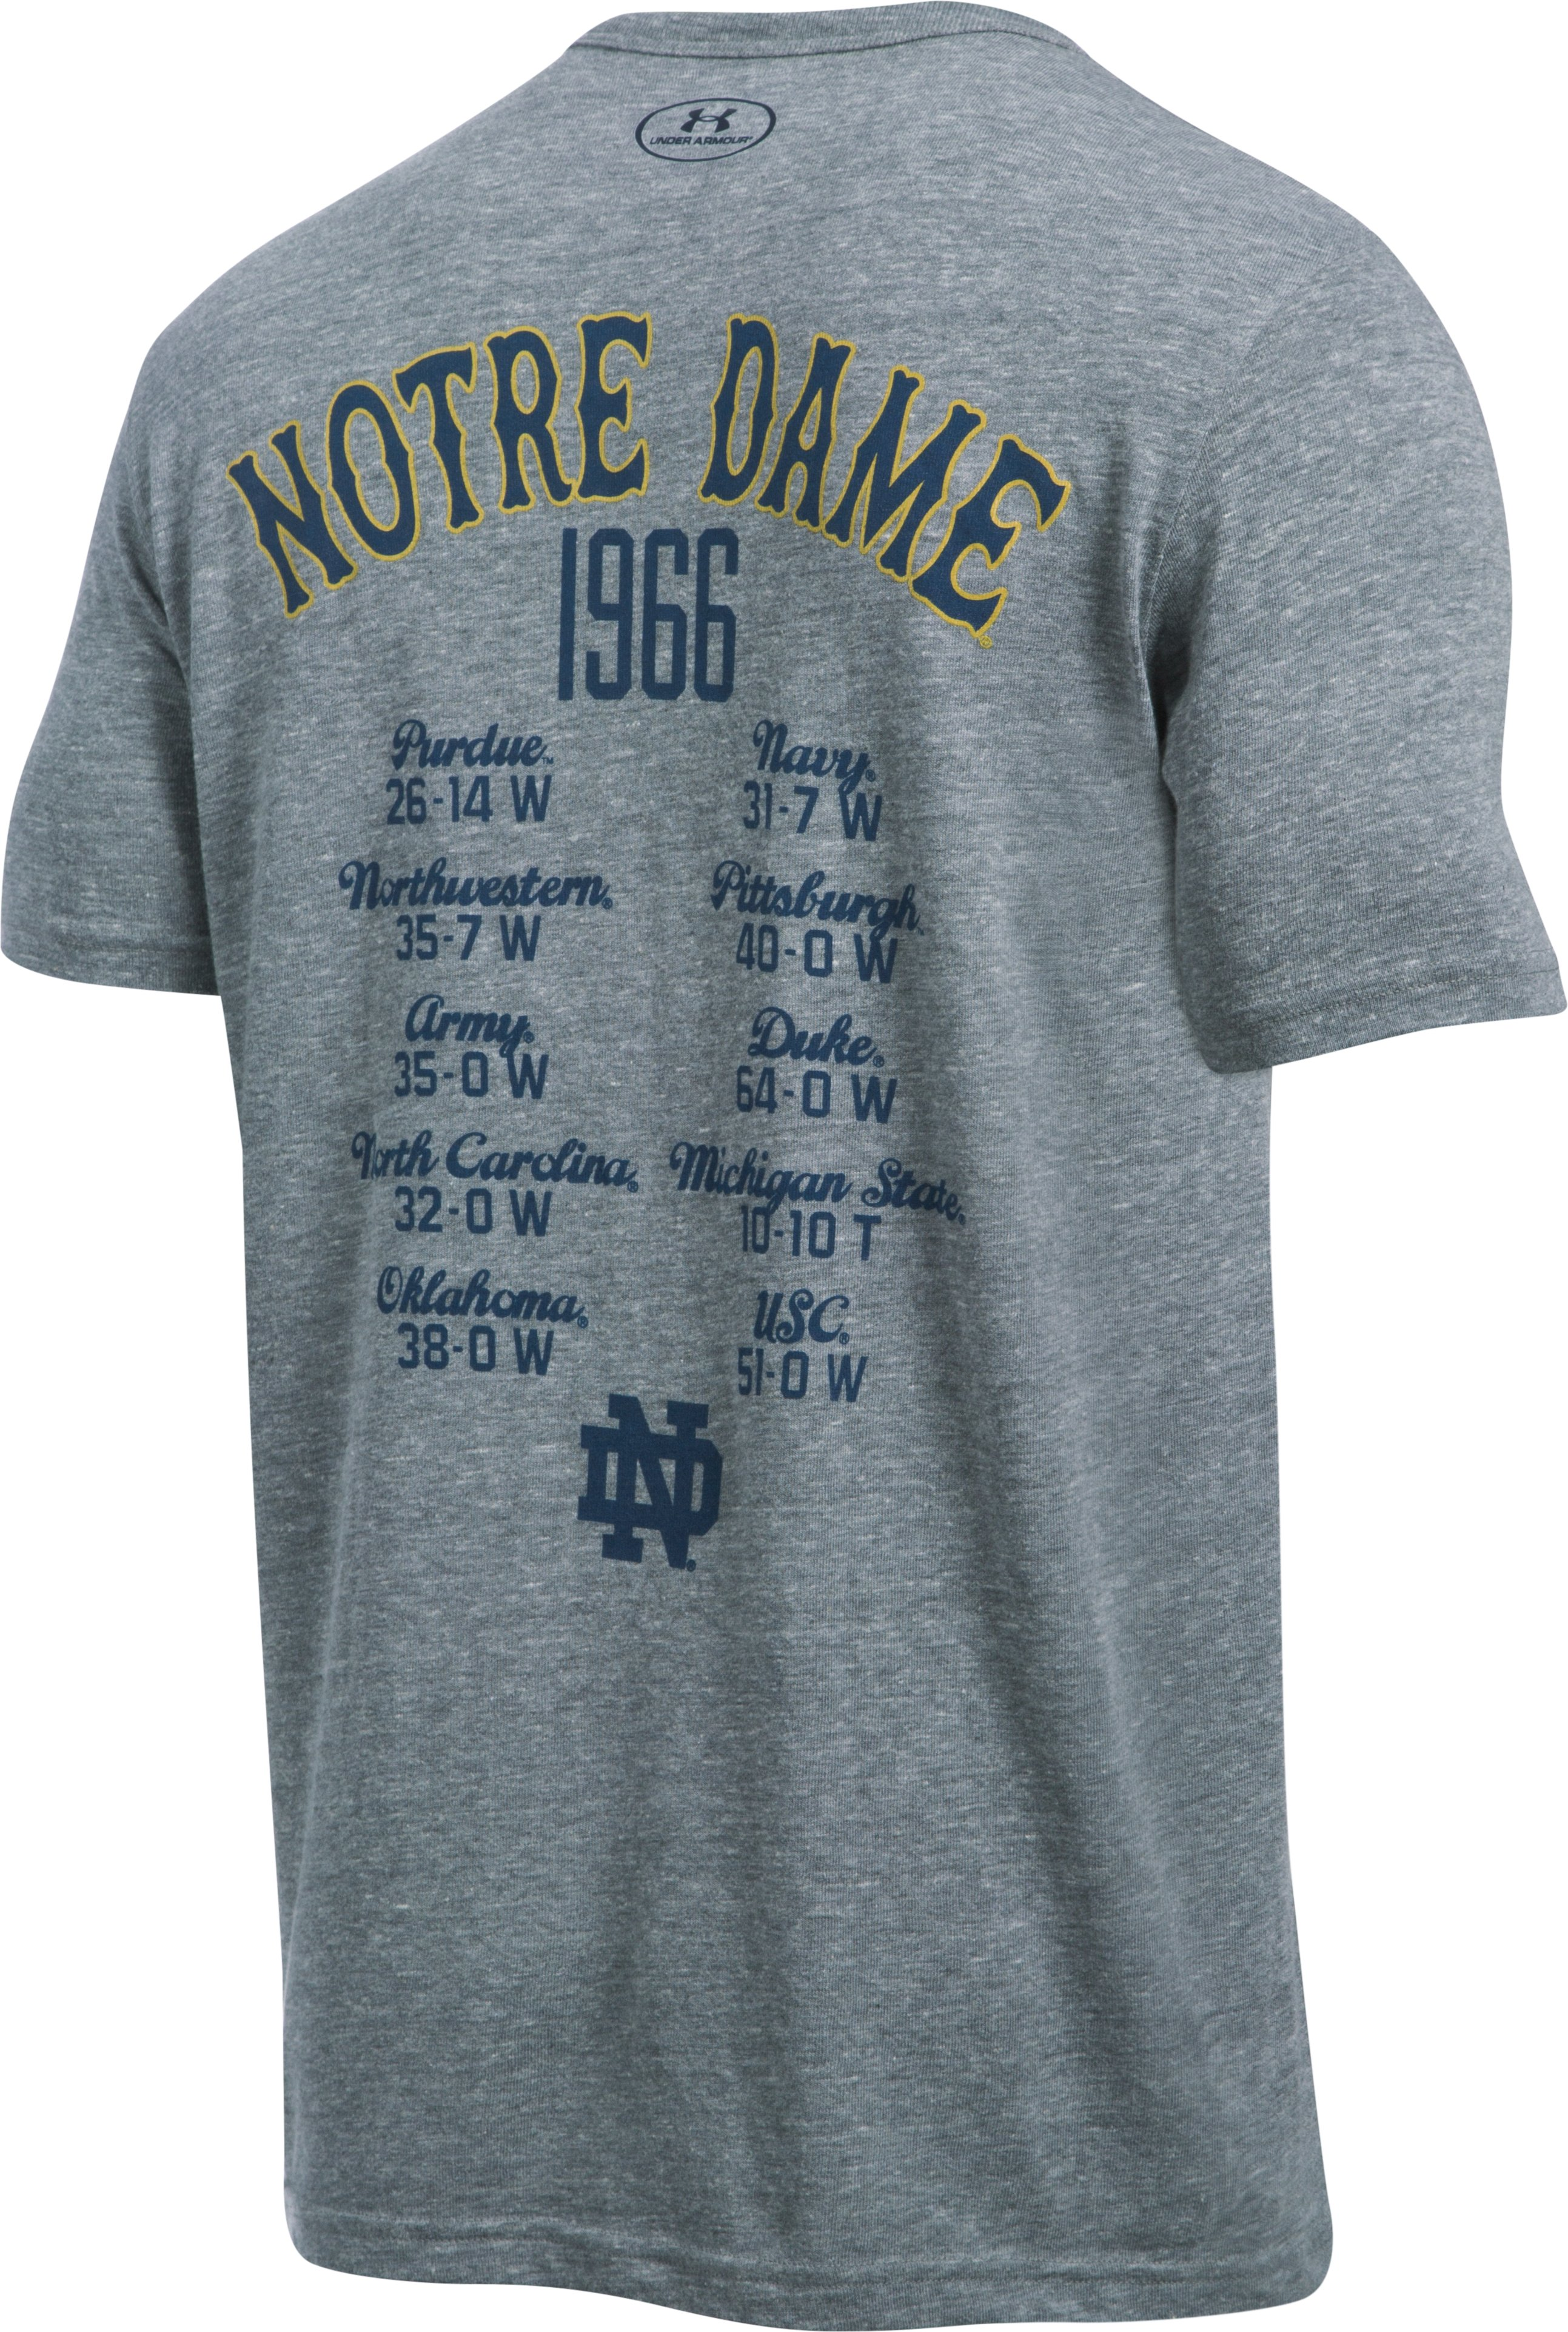 Men's Notre Dame UA Iconic 1966 Champ T-Shirt, True Gray Heather, undefined